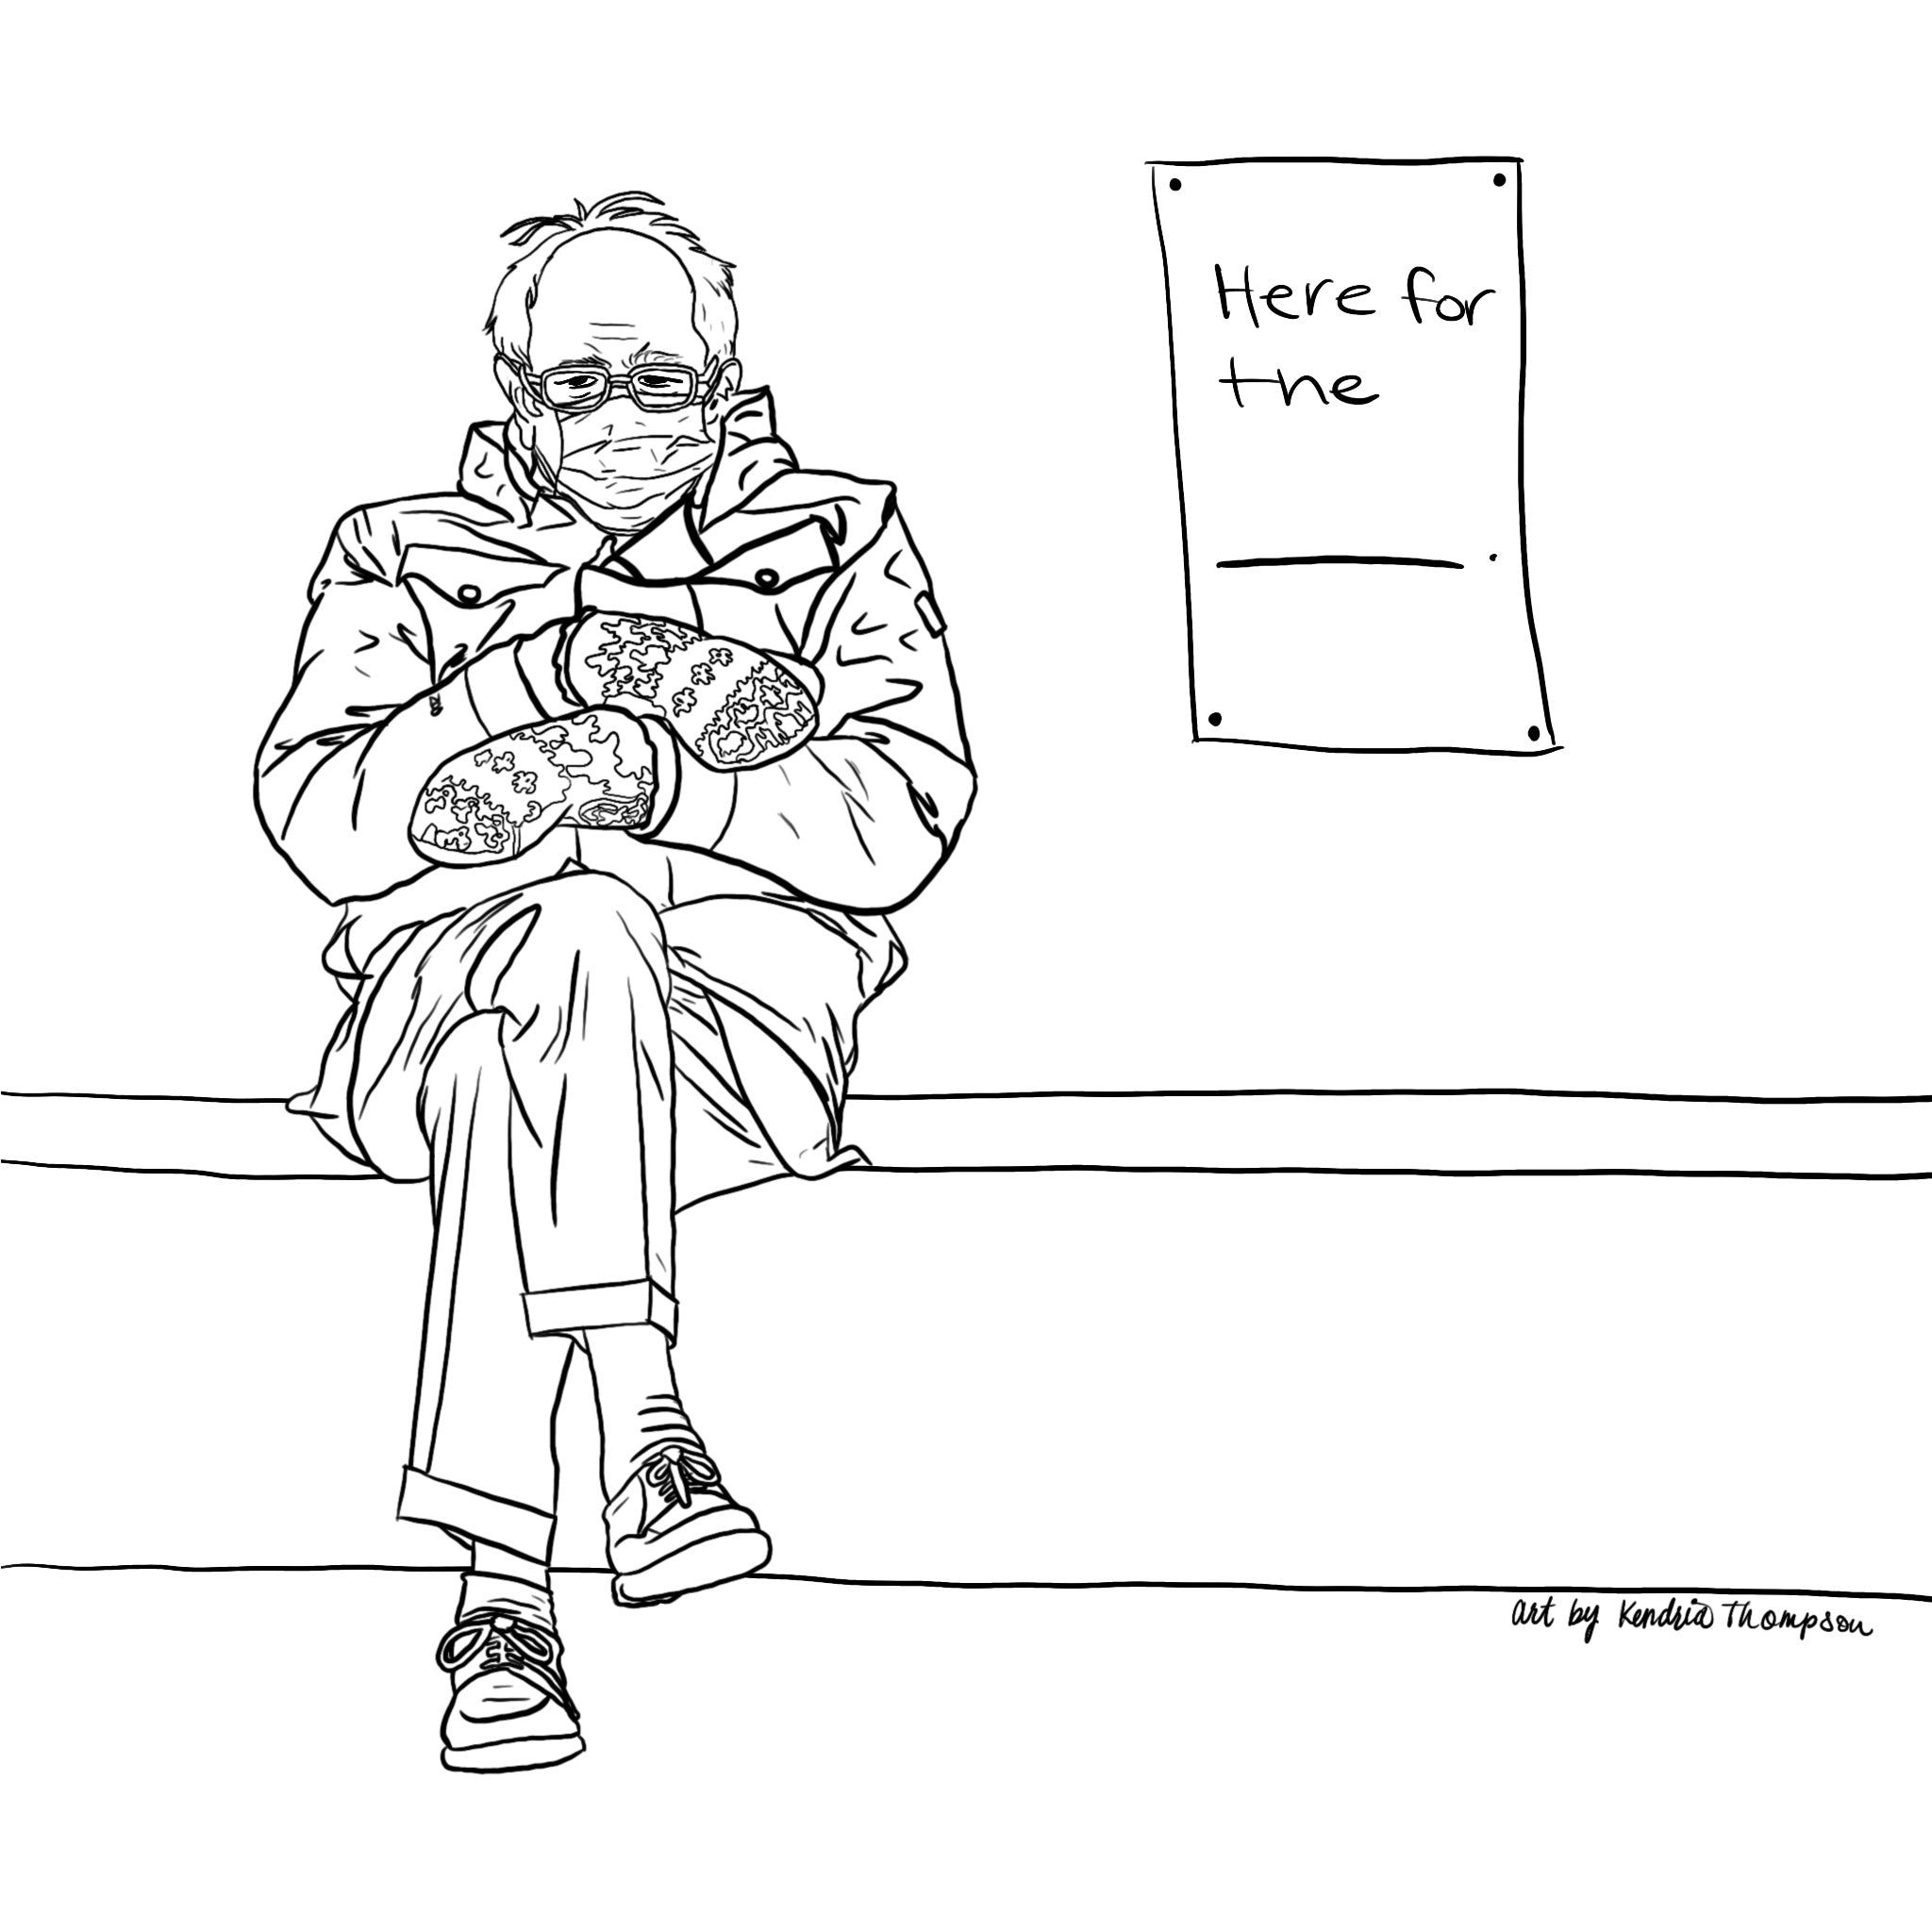 Bernie Sanders Illustration - Image of him sitting with mitten at the President's and Vice President's Inauguration